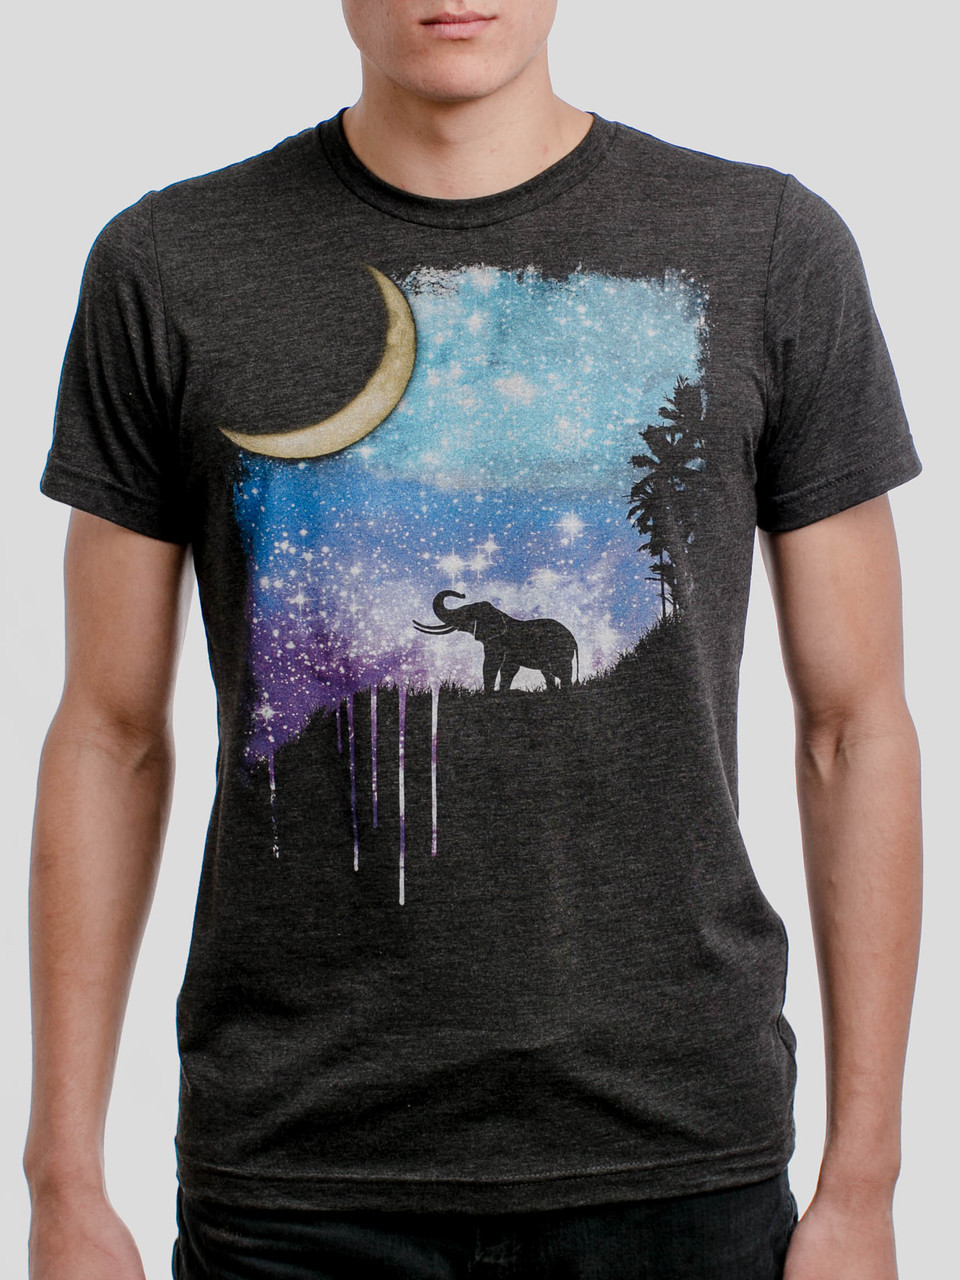 ce56c9ad3 Elephant Moon - Multicolor on Heather Black Triblend Mens T Shirt - Curbside  Clothing